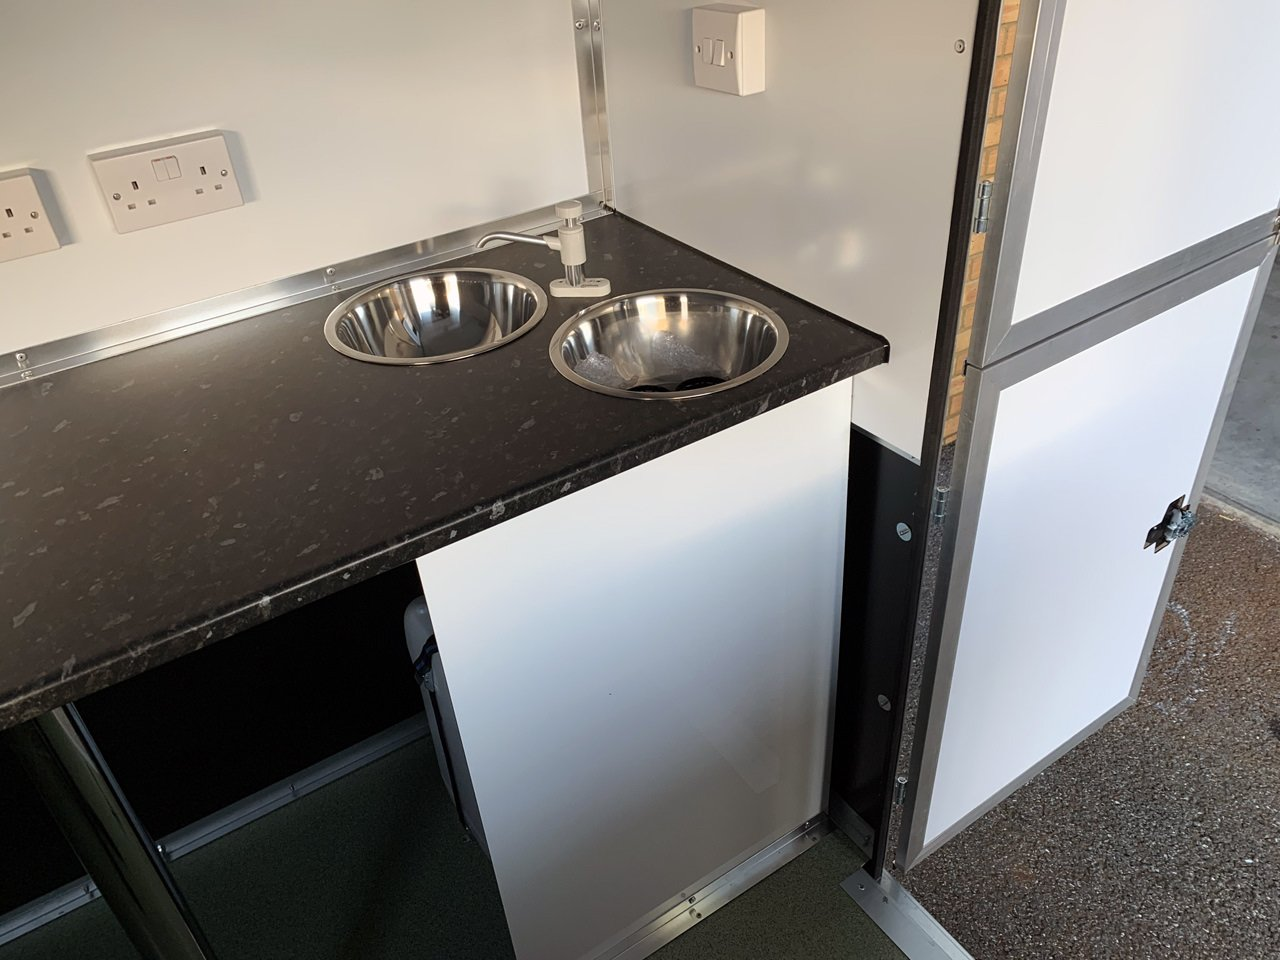 new catering trailer sinks and electrical design